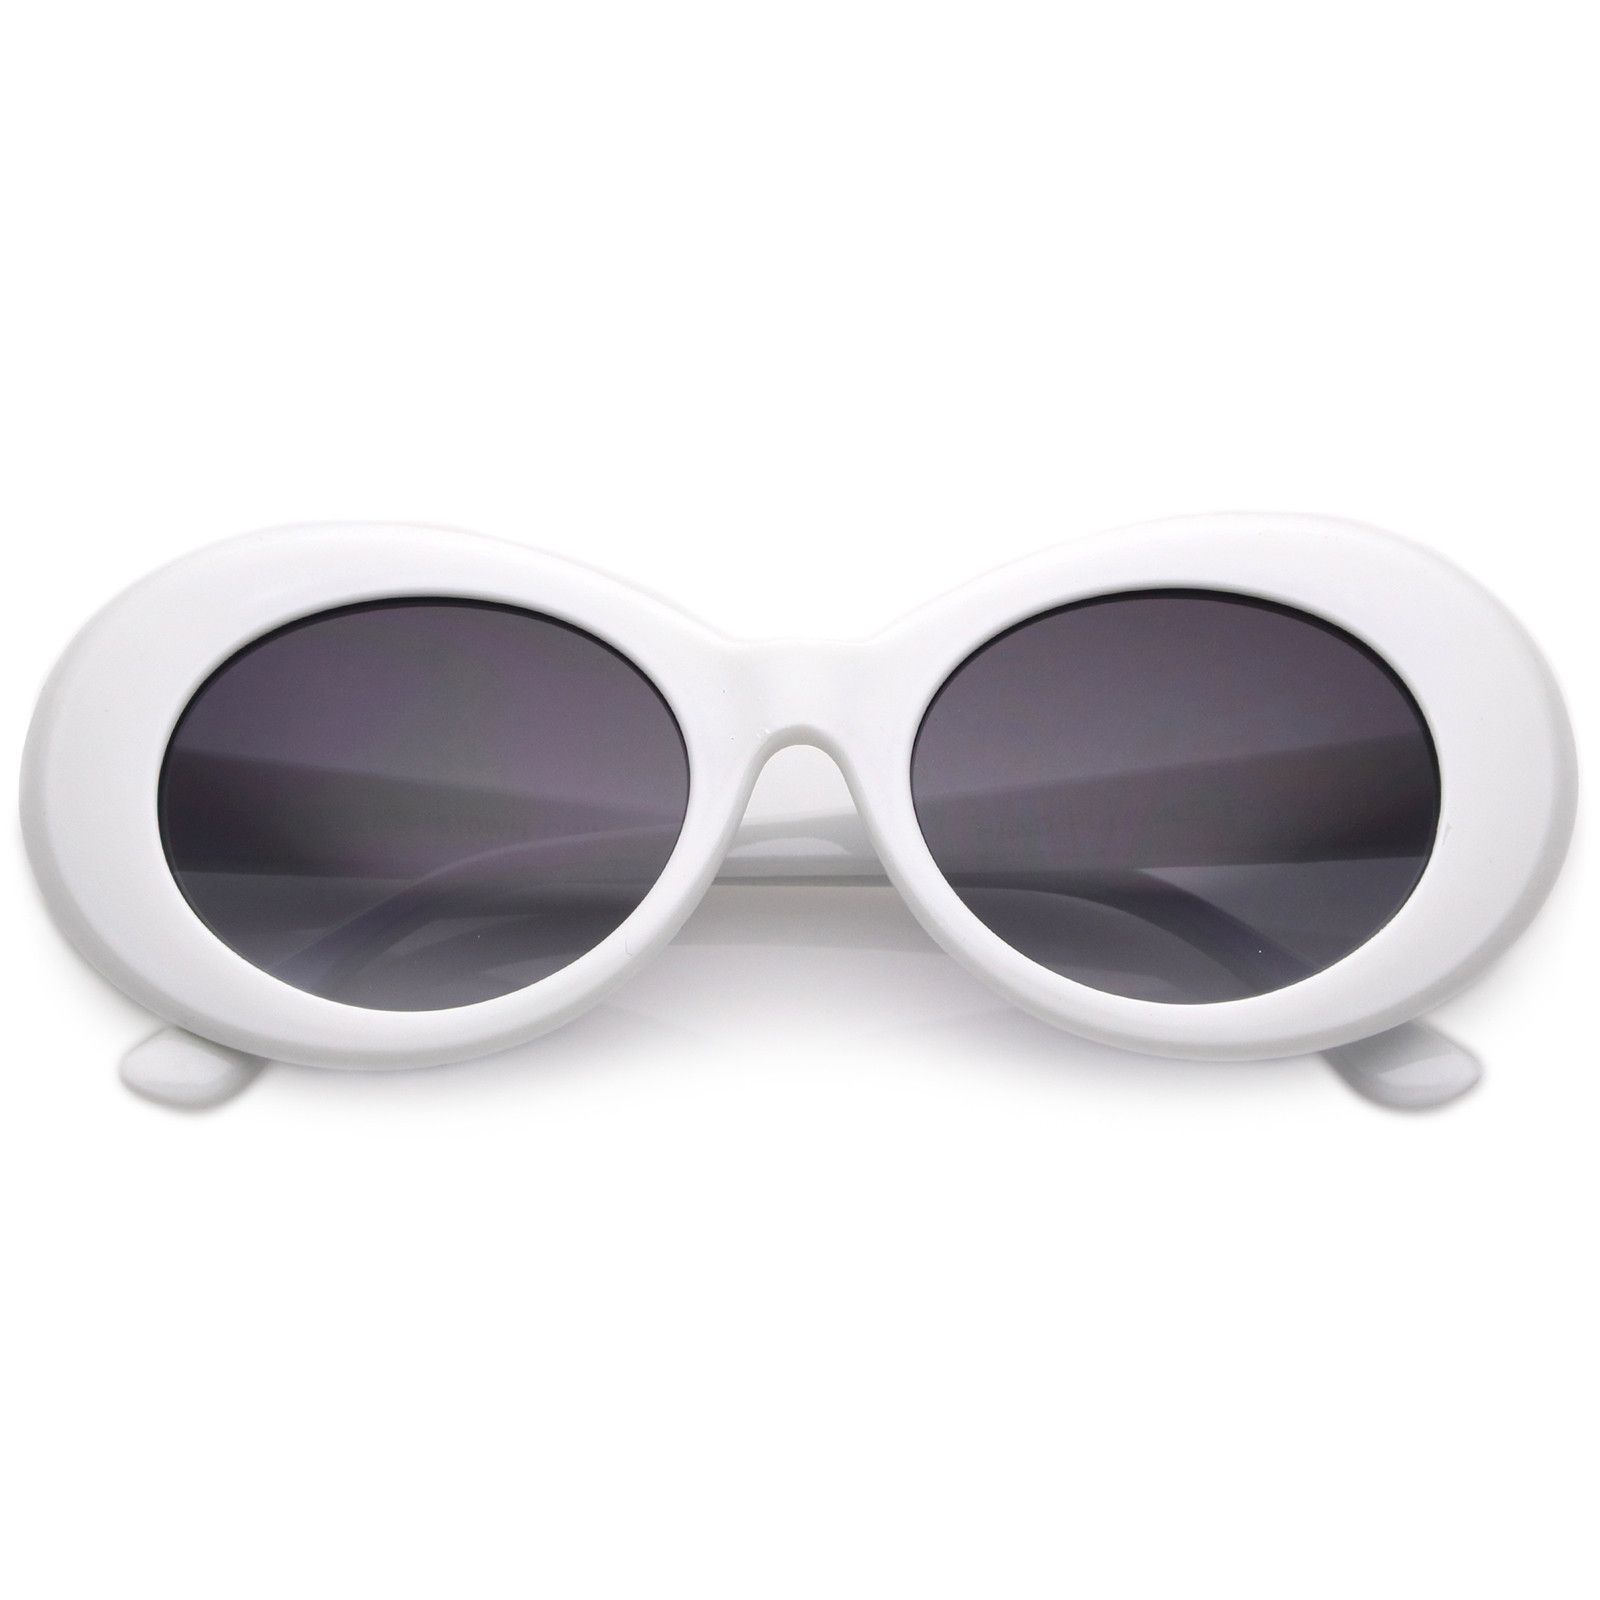 6cf794e216 Retro Clout Oval Round 90 s Gradient Lens Sunglasses C448 in 2019 ...